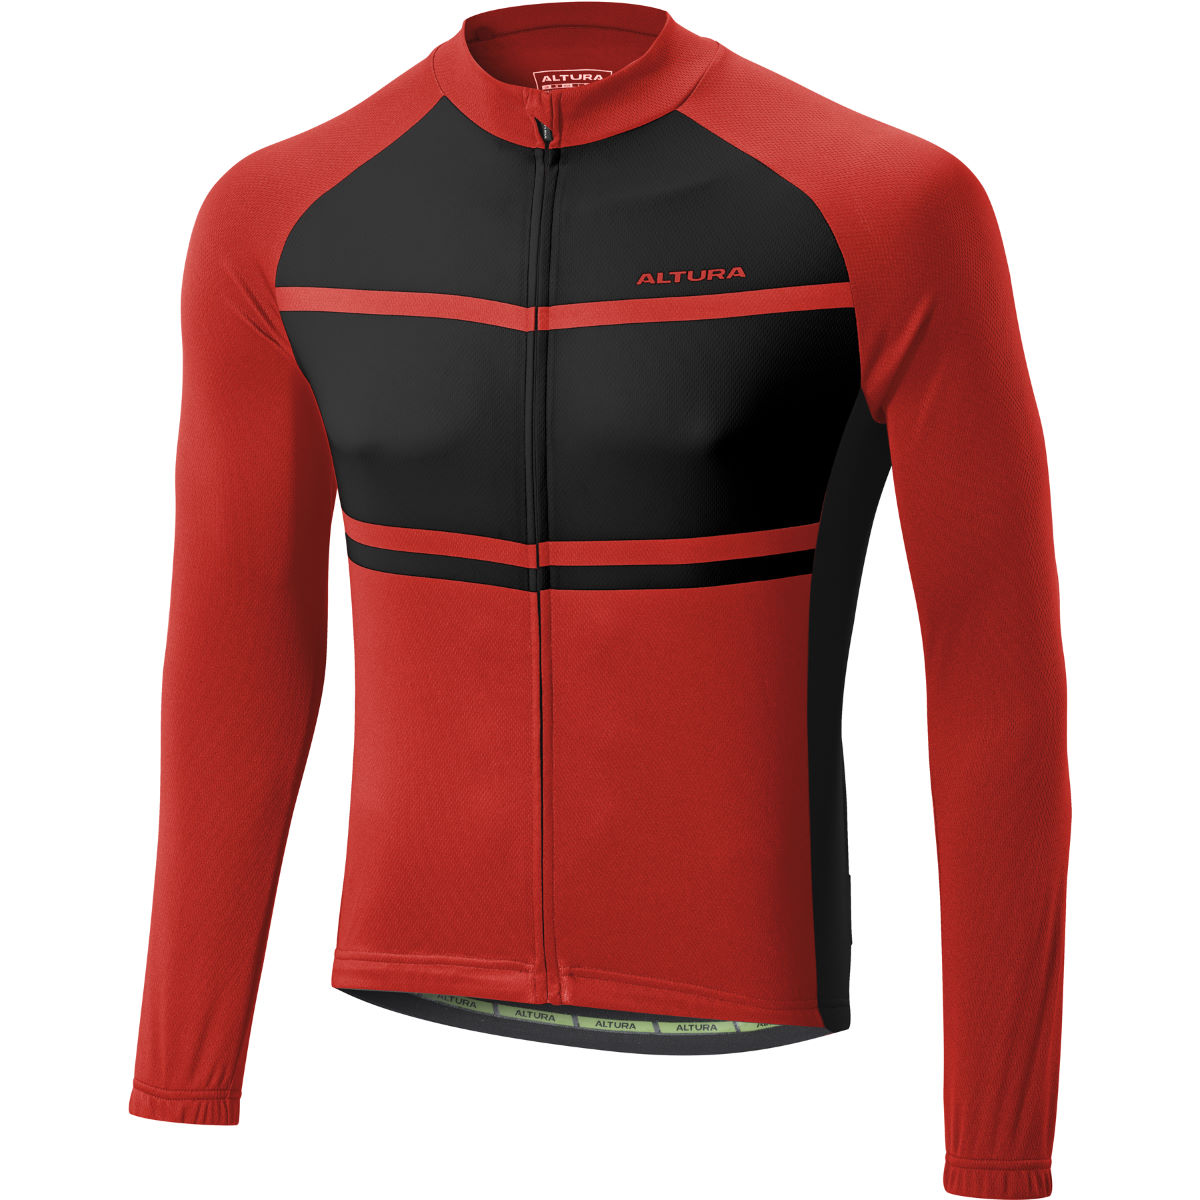 Altura Airstream 2 Summer Jersey (Summer Long Sleeve)